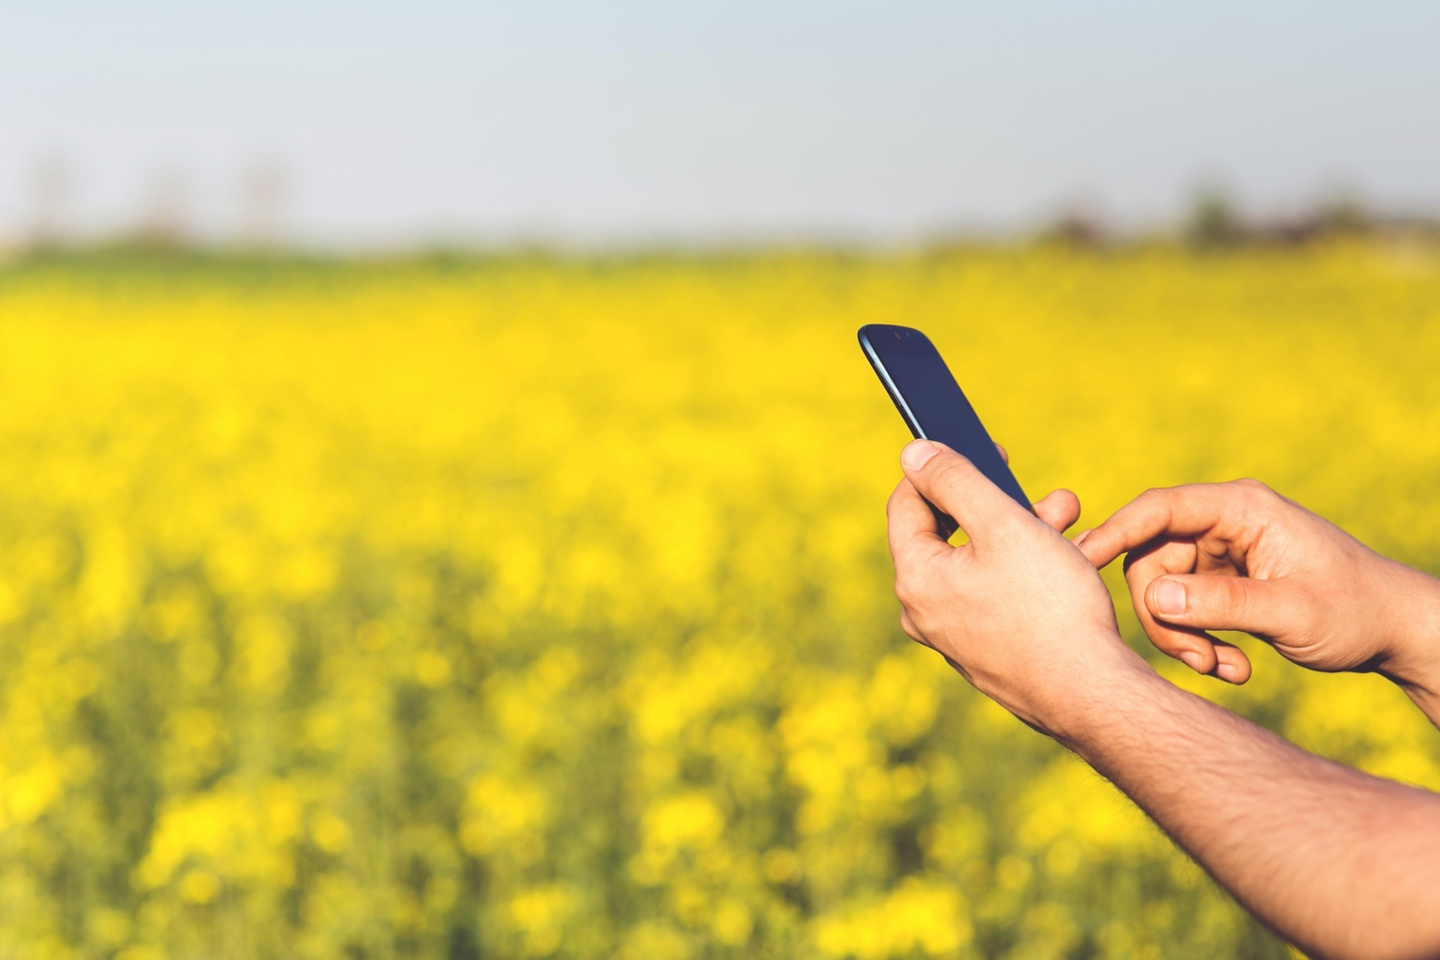 How agriculture is shaken up by digital technology